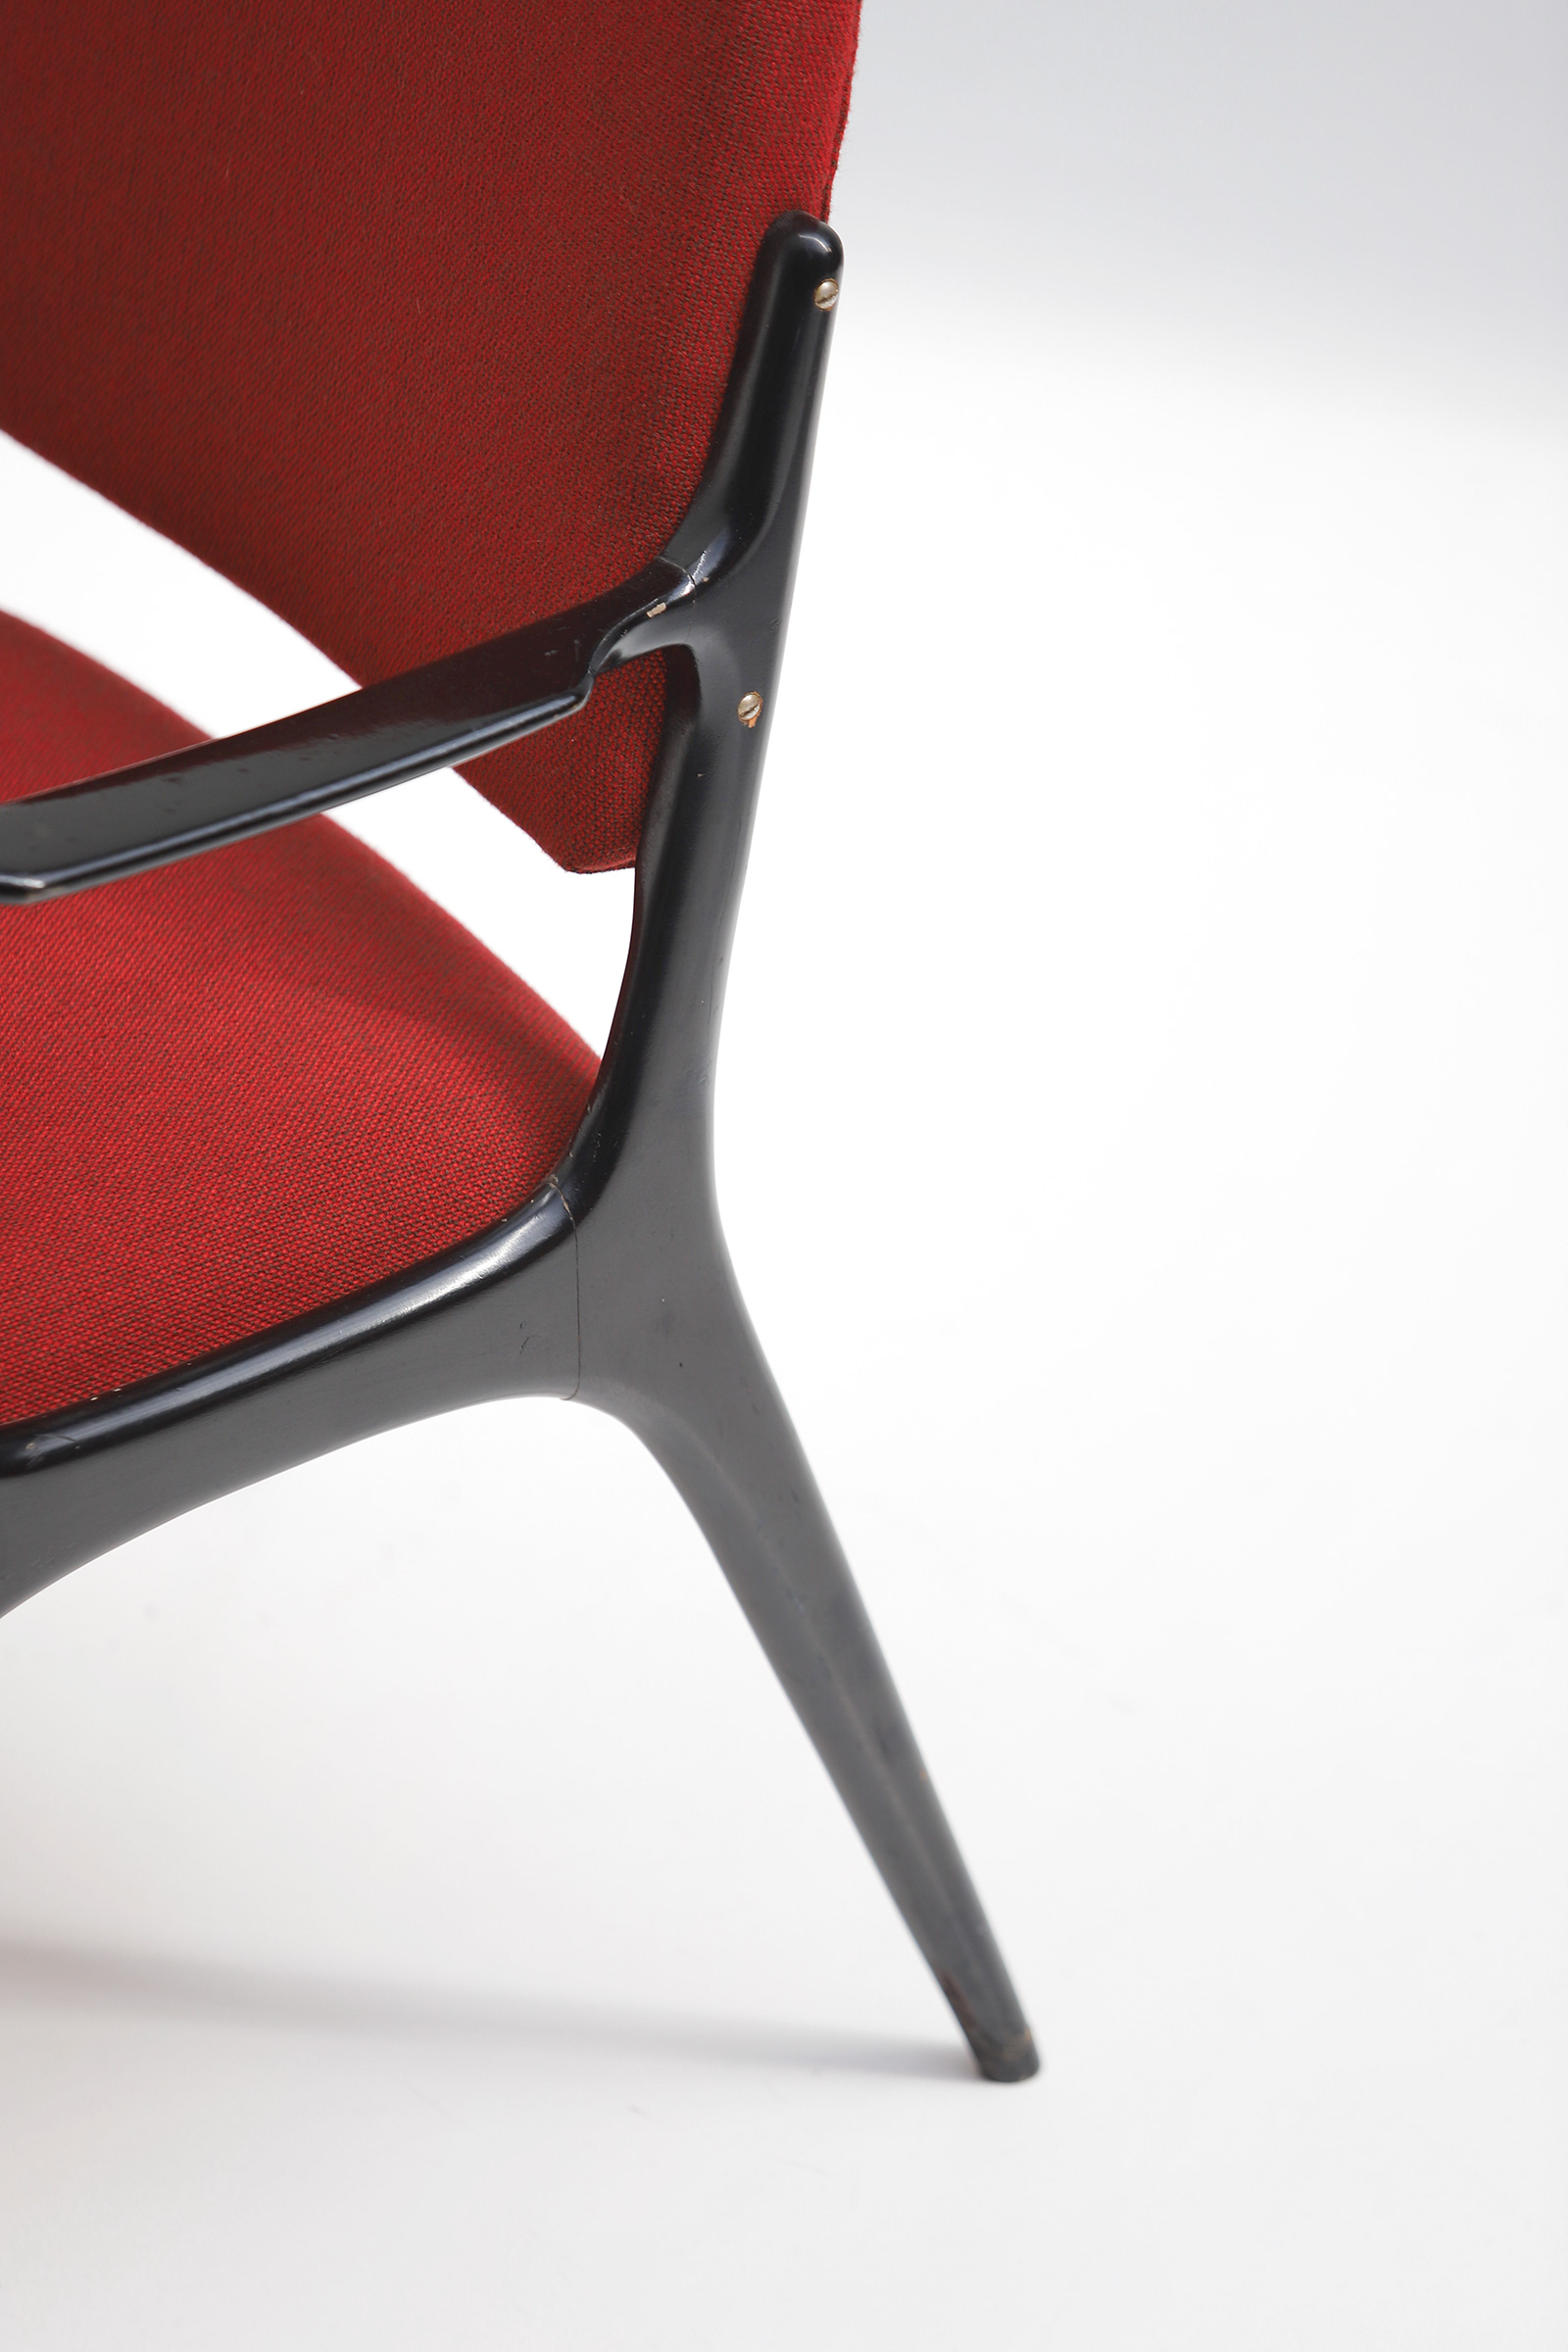 Two Chairs By Alfred Hendrickx for Belformimage 4